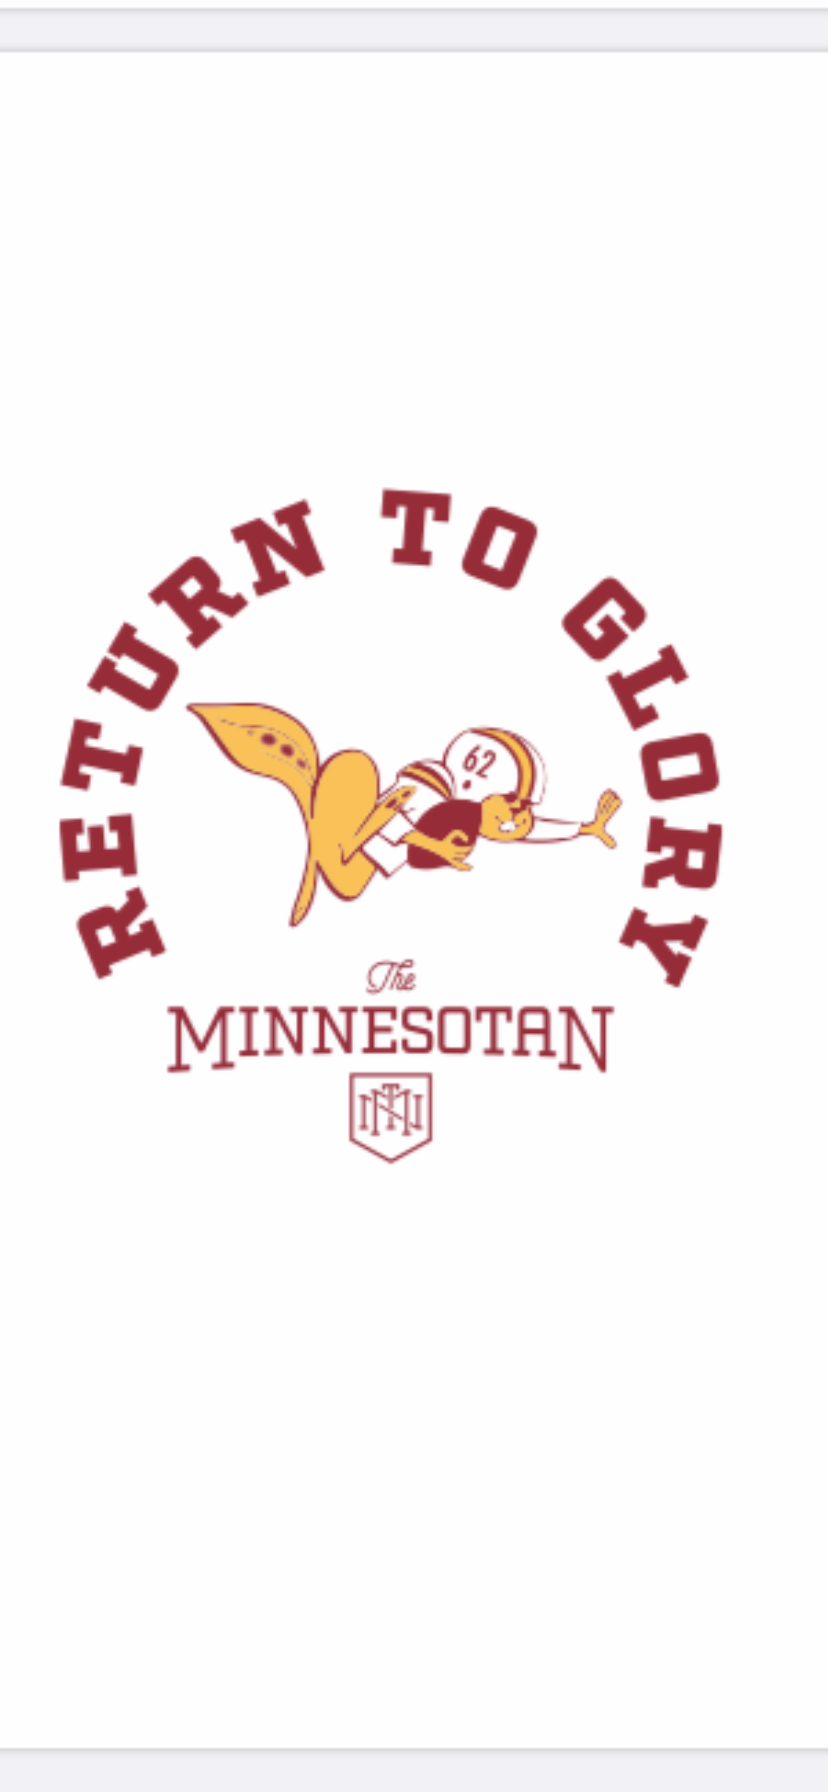 Gopher Football - Return to Glory